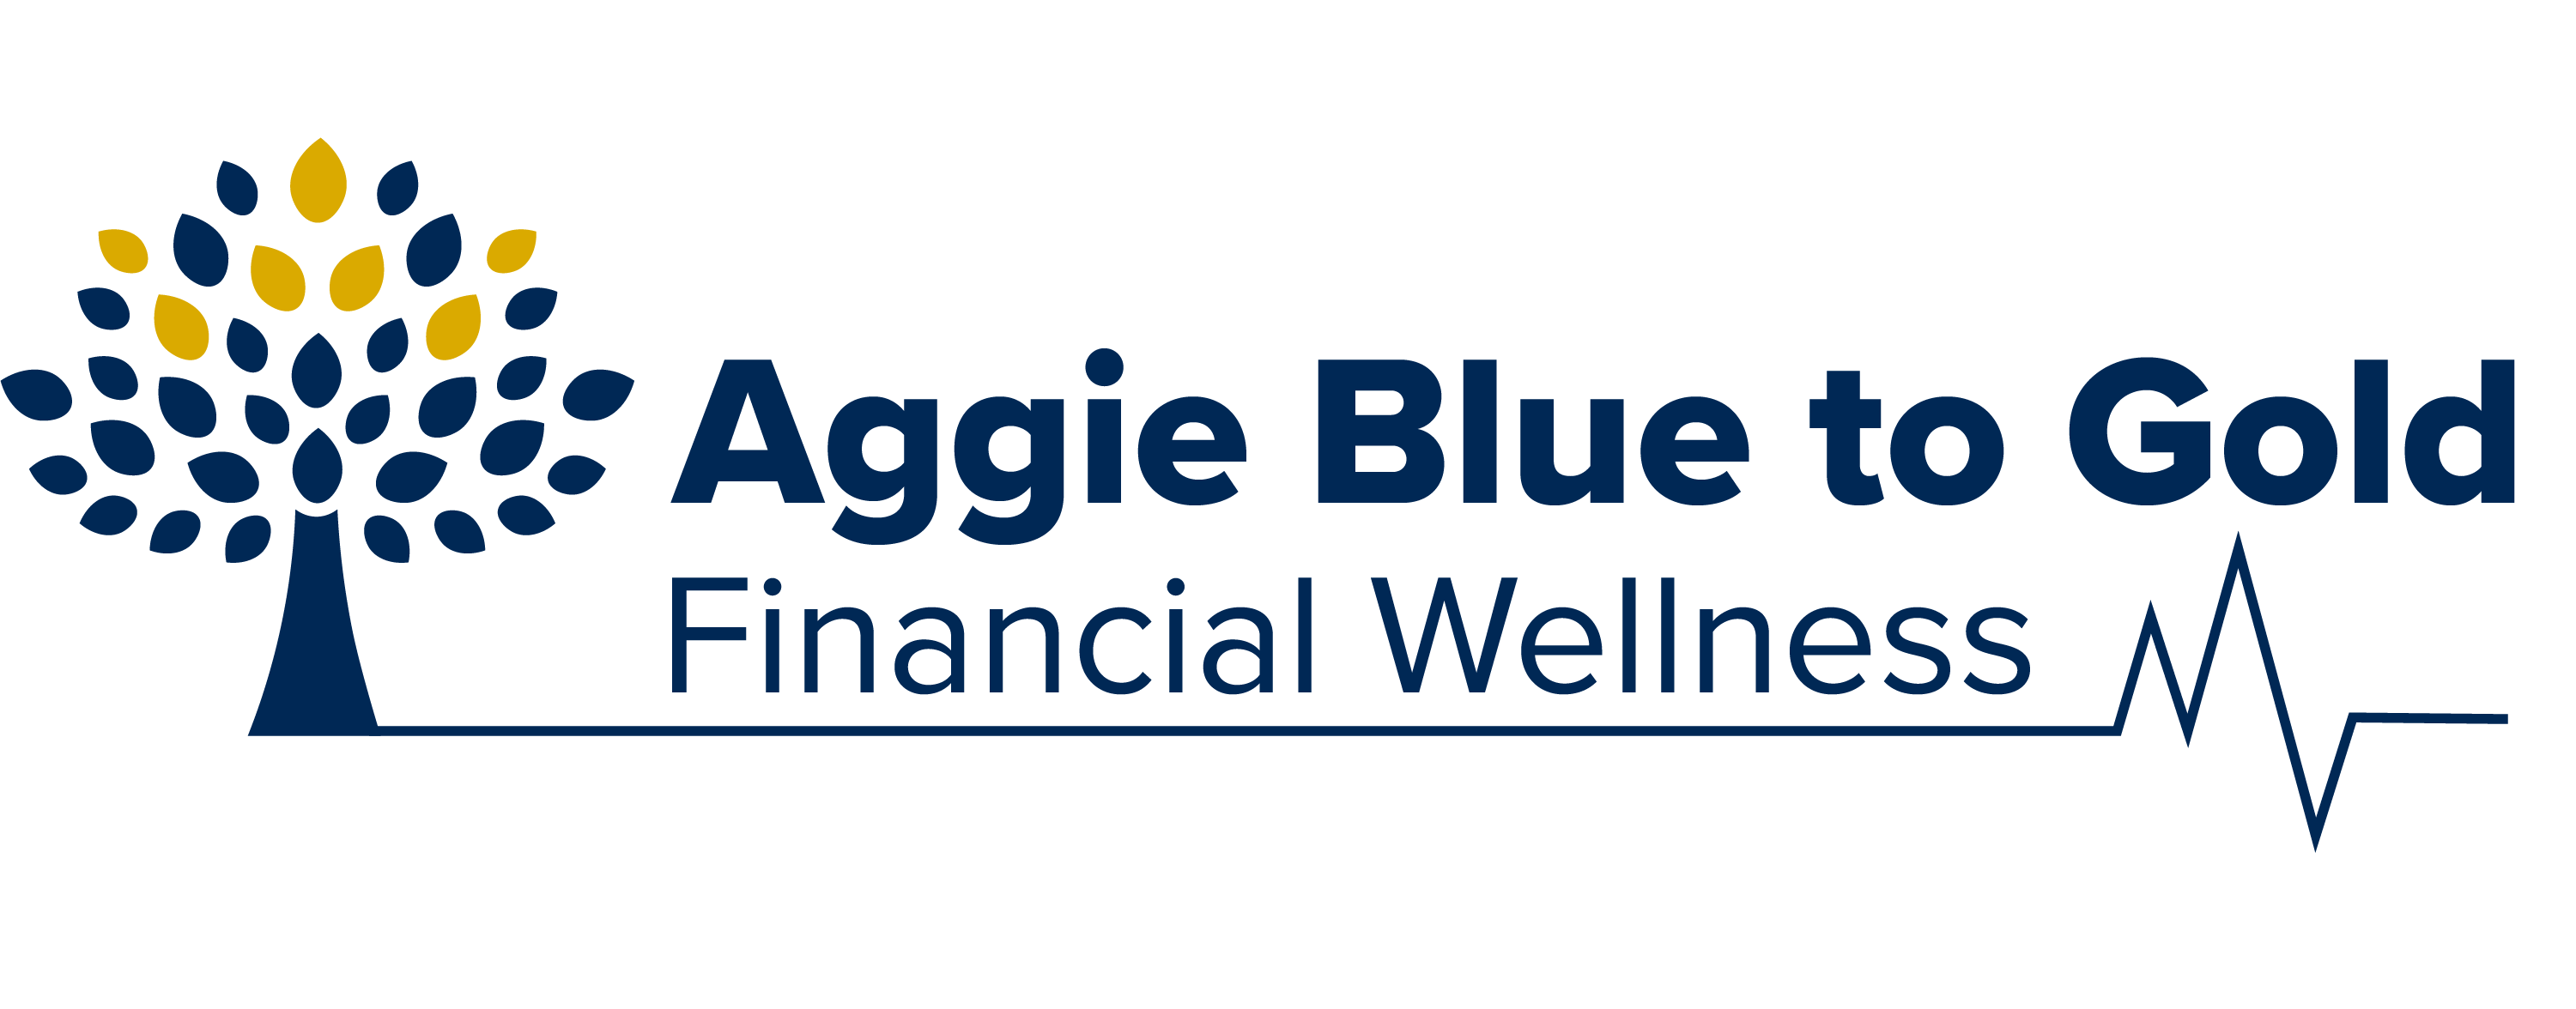 Aggie Blue to Gold Financial Wellness logo